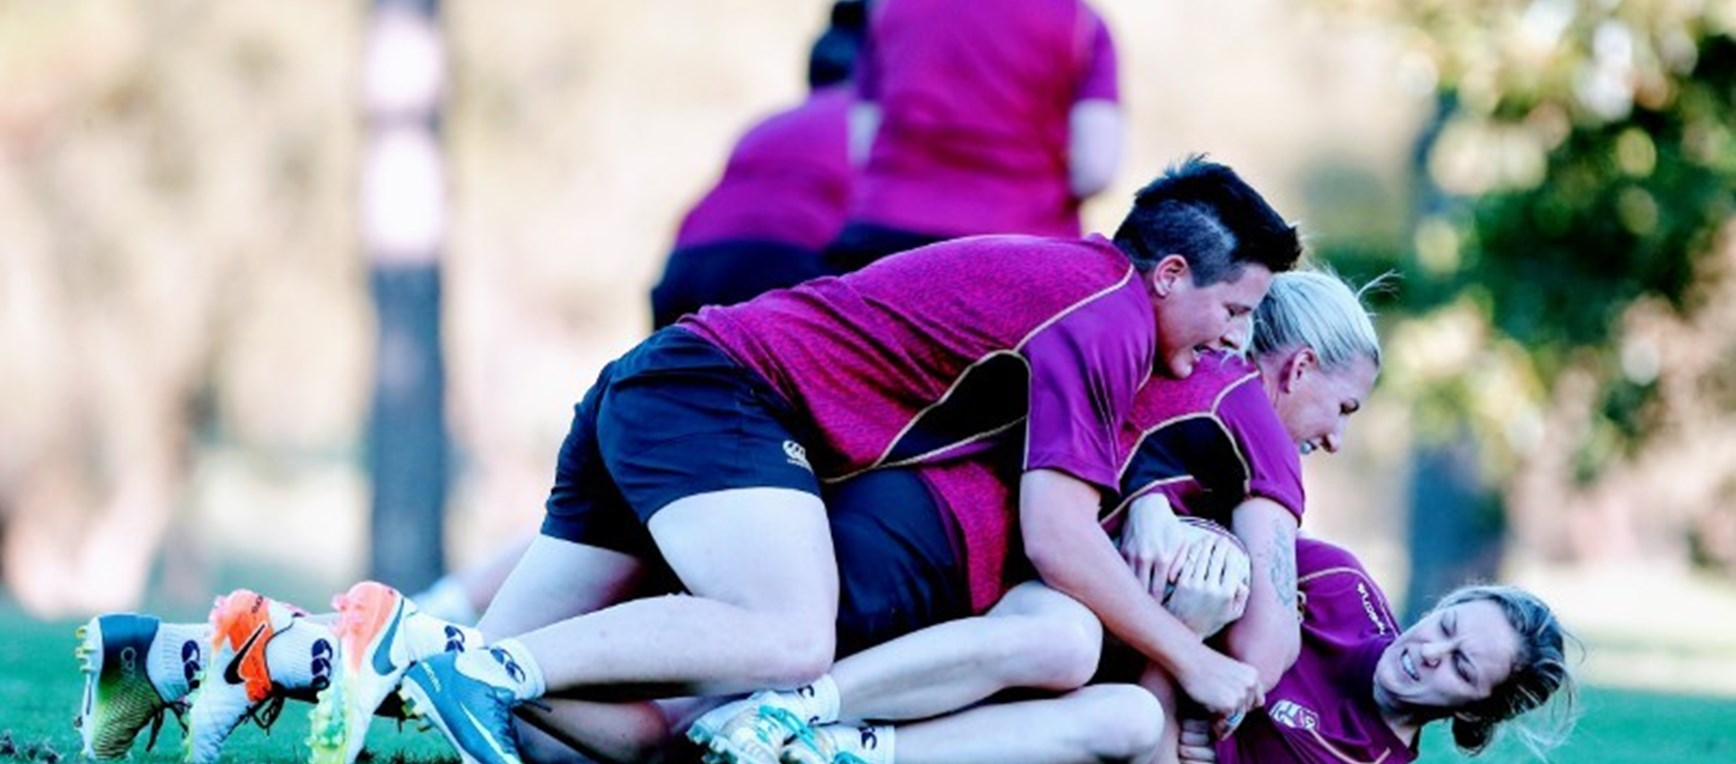 Women hit training paddock